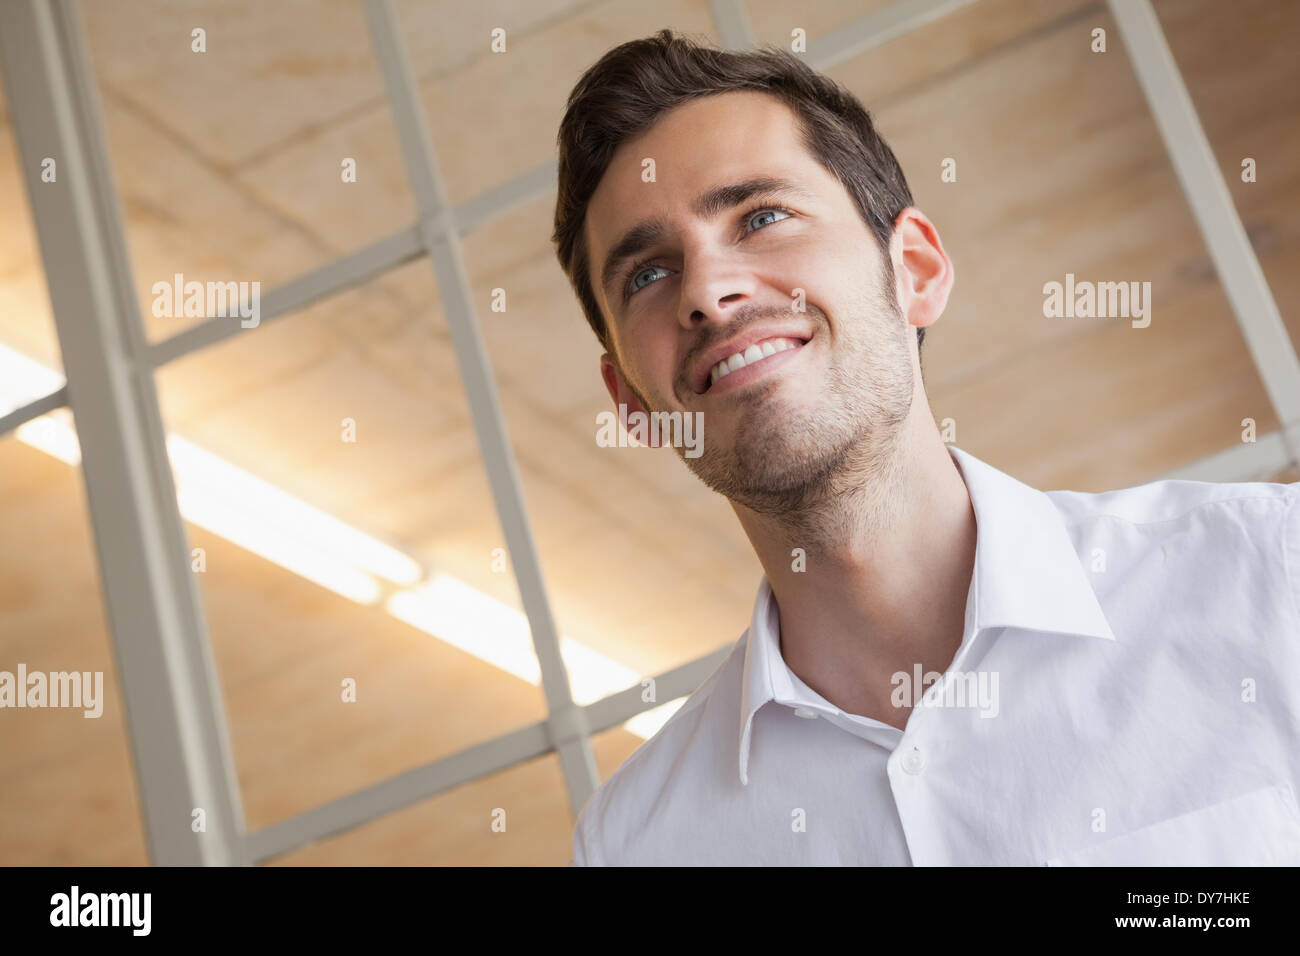 Casual businesswoman expression heureuse Photo Stock